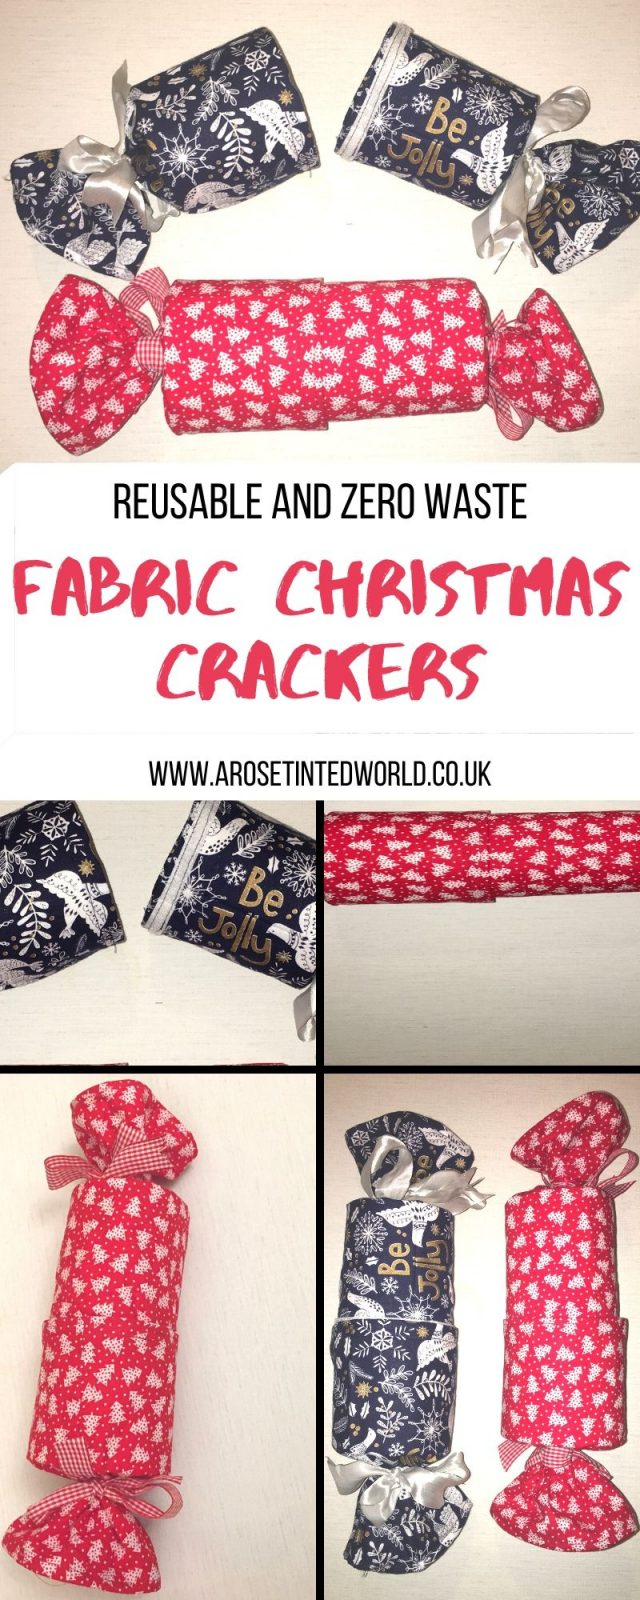 Reusable Fabric Christmas Crackers are a zero waste and sustainable alternative to regular Christmas crackers in the festive holiday season. #christmascrackers #diycrackers #diychristmascrackers #christmascrafts #christmascraftideas #christmasdiy #sustainablechristmas #sustainableliving #sustainable #zerowaste #zerowastechristmas #zerowastelifestyle